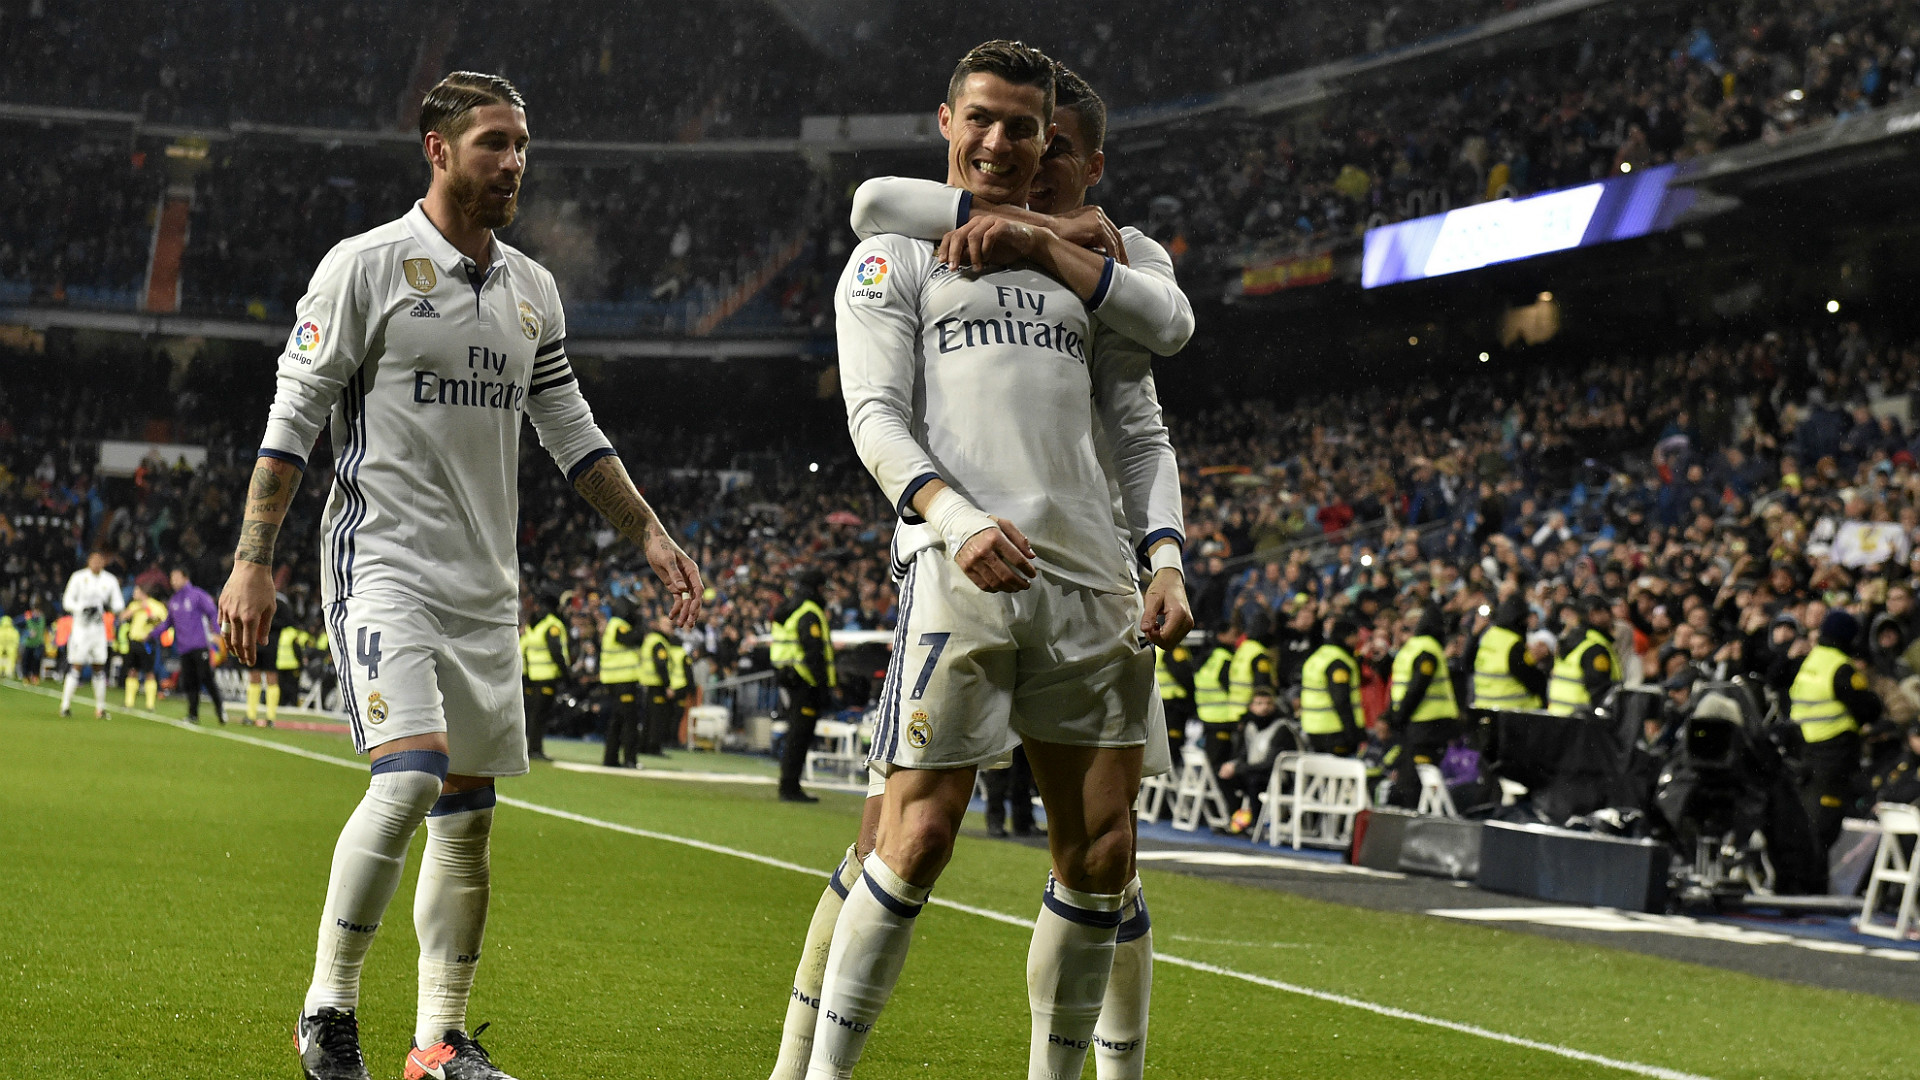 Real Madrid CF v Real Sociedad de Fútbol Match Report, 29